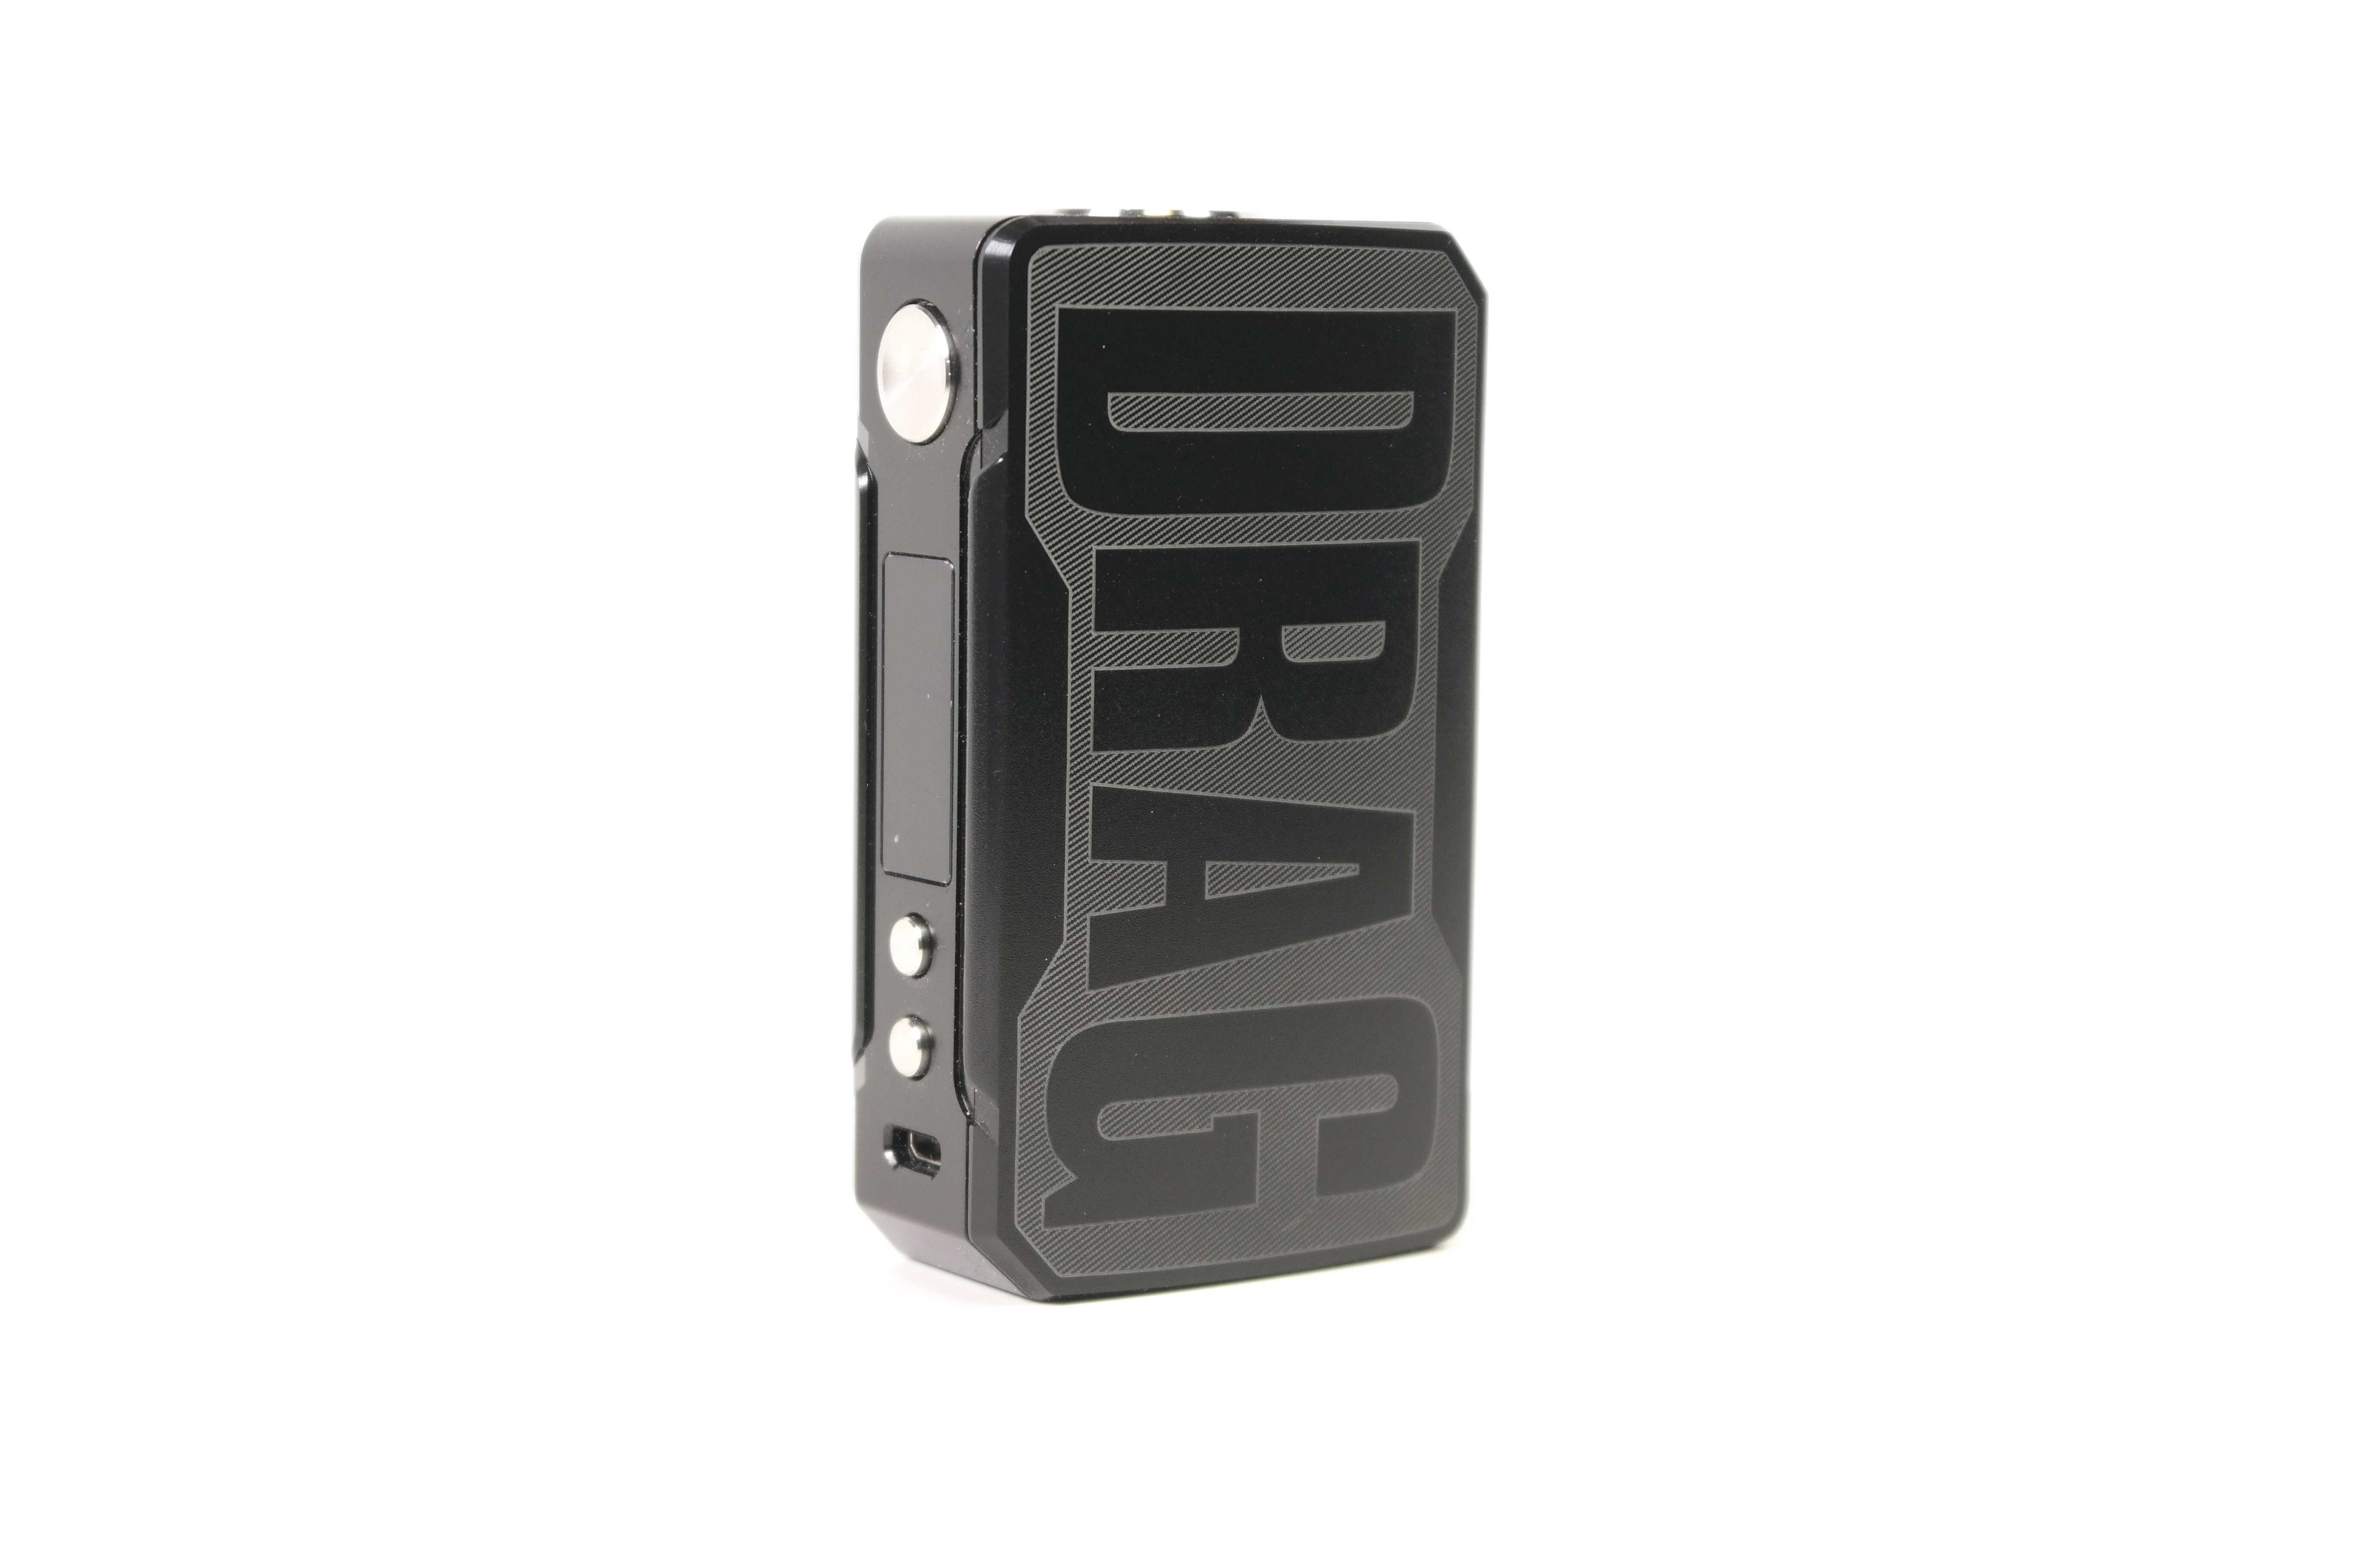 Voopoo Drag 2 Kit with Uforce T2 Review - Vapor Leaf